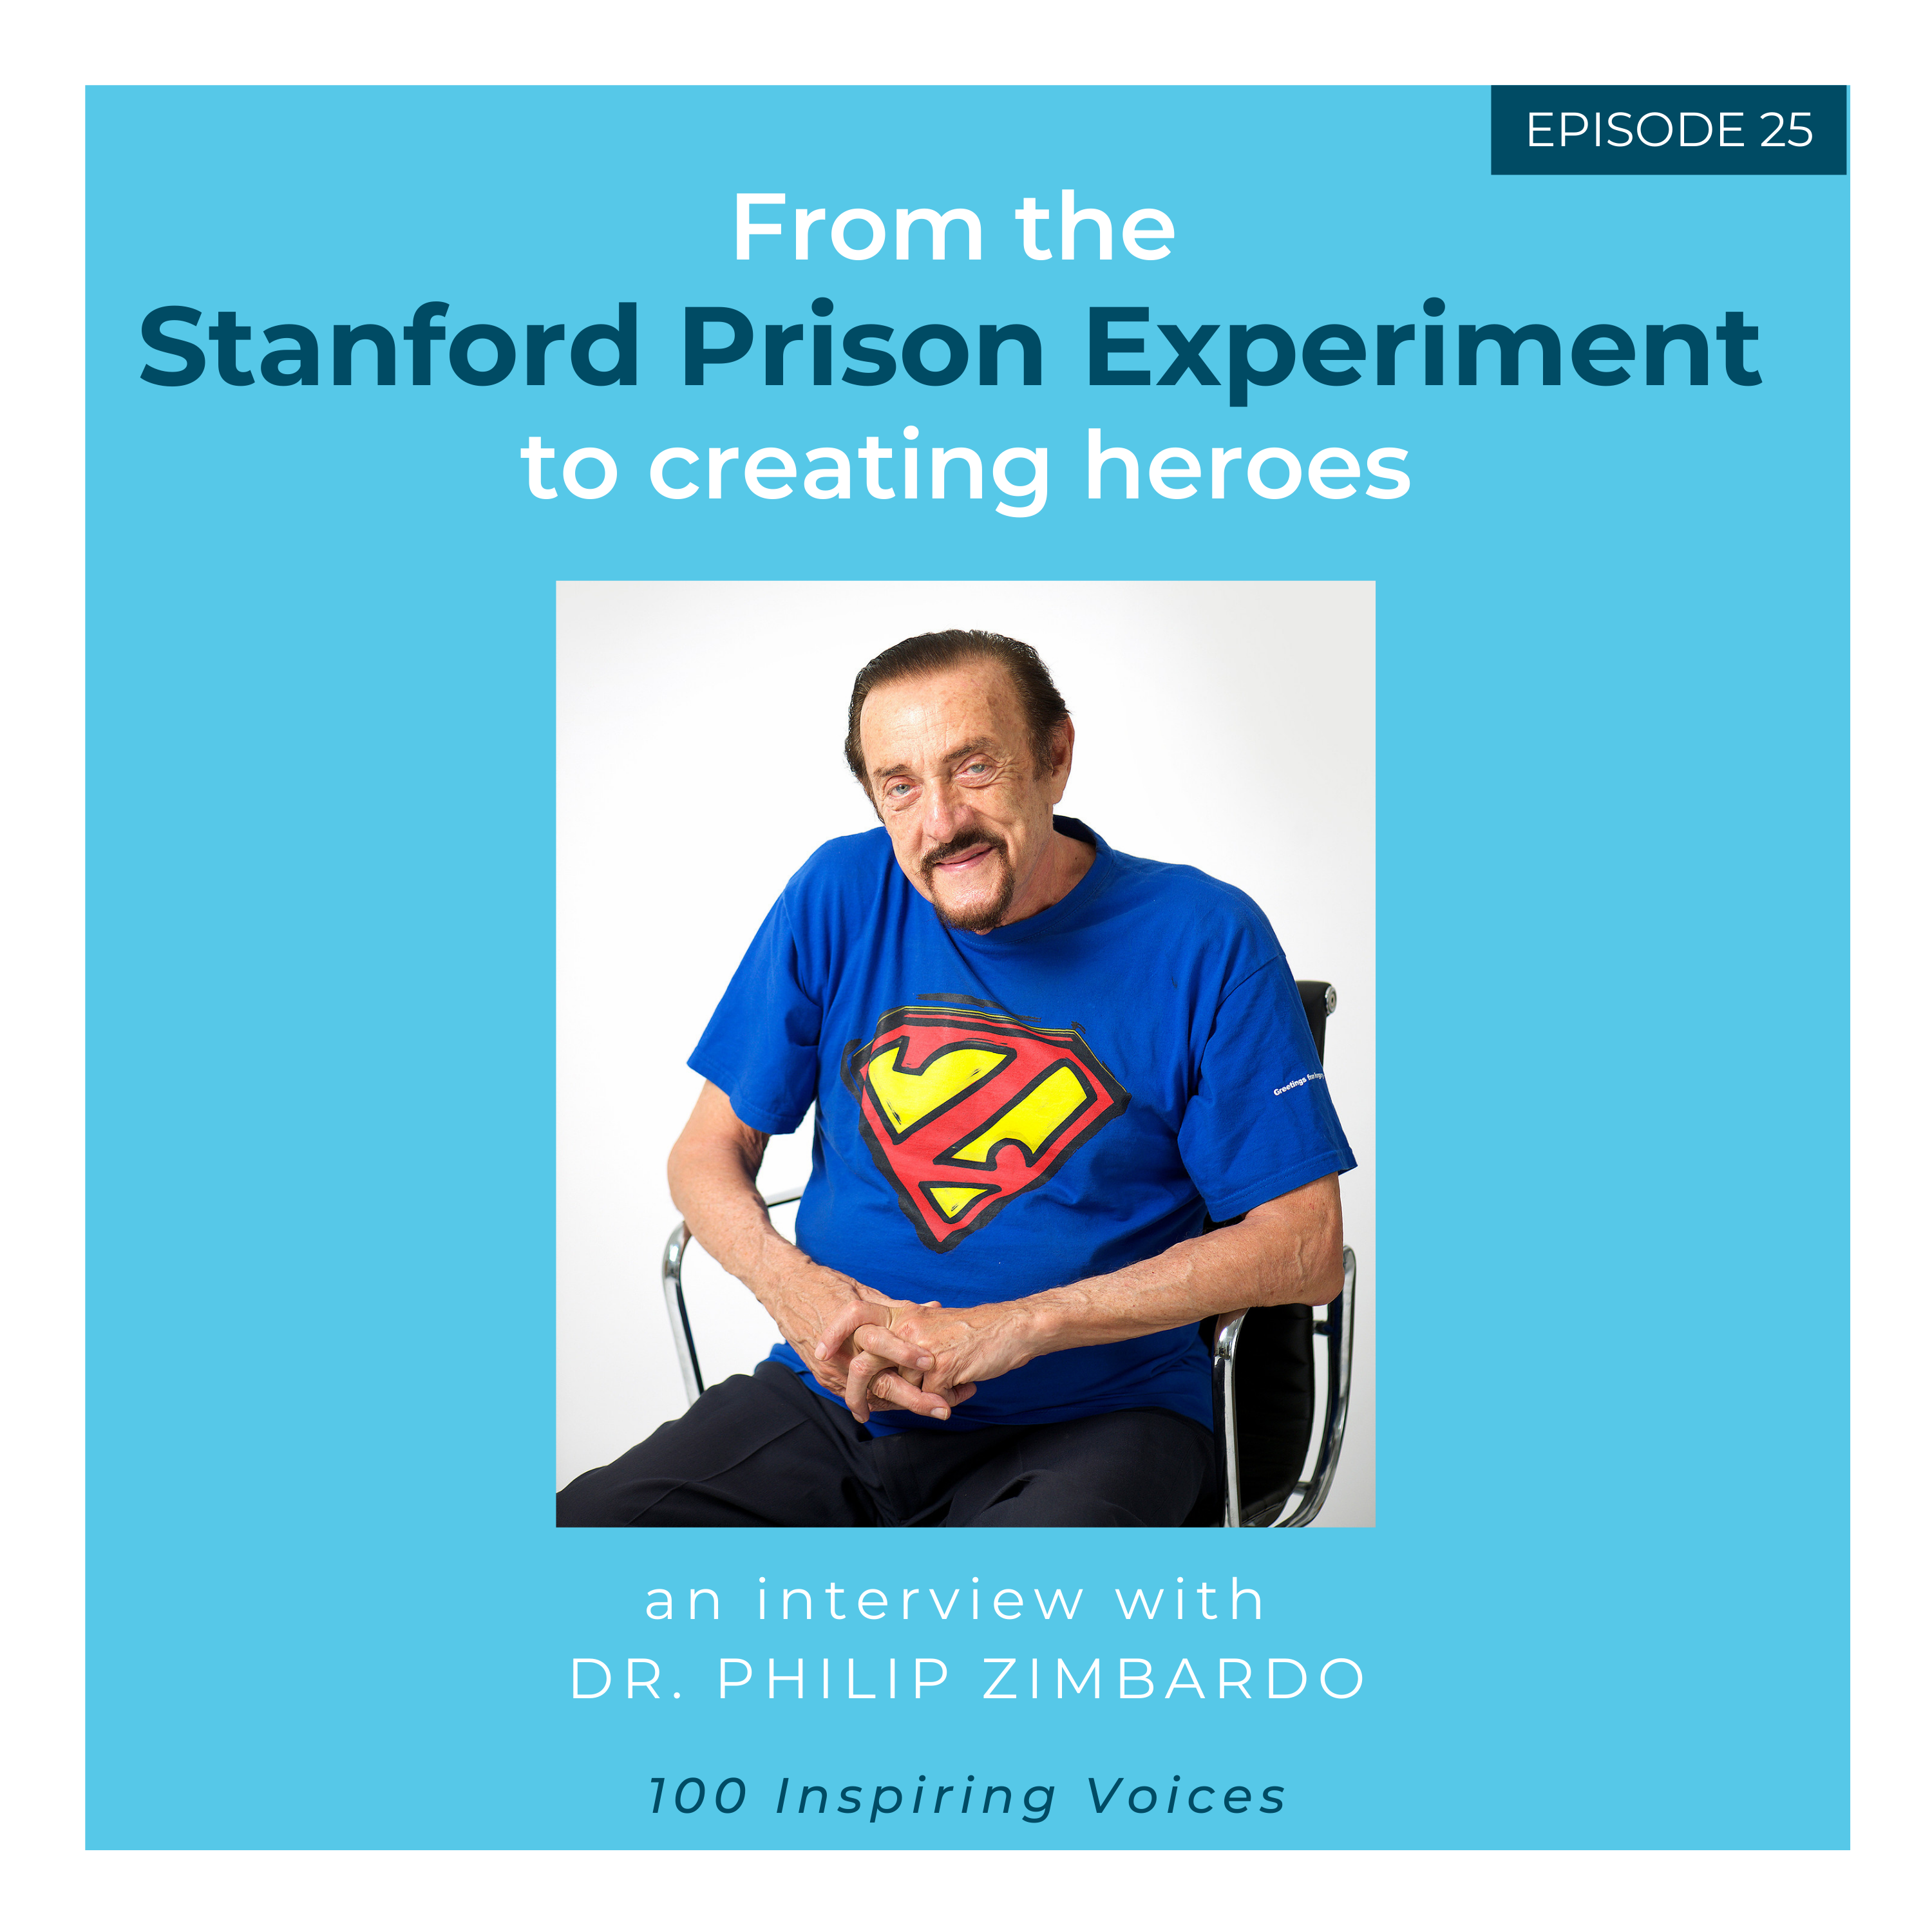 100 Inspiring Voices | Episode #25 | Dr. Philip Zimbardo | From The Stanford Prison Experiment to creating everyday heroes